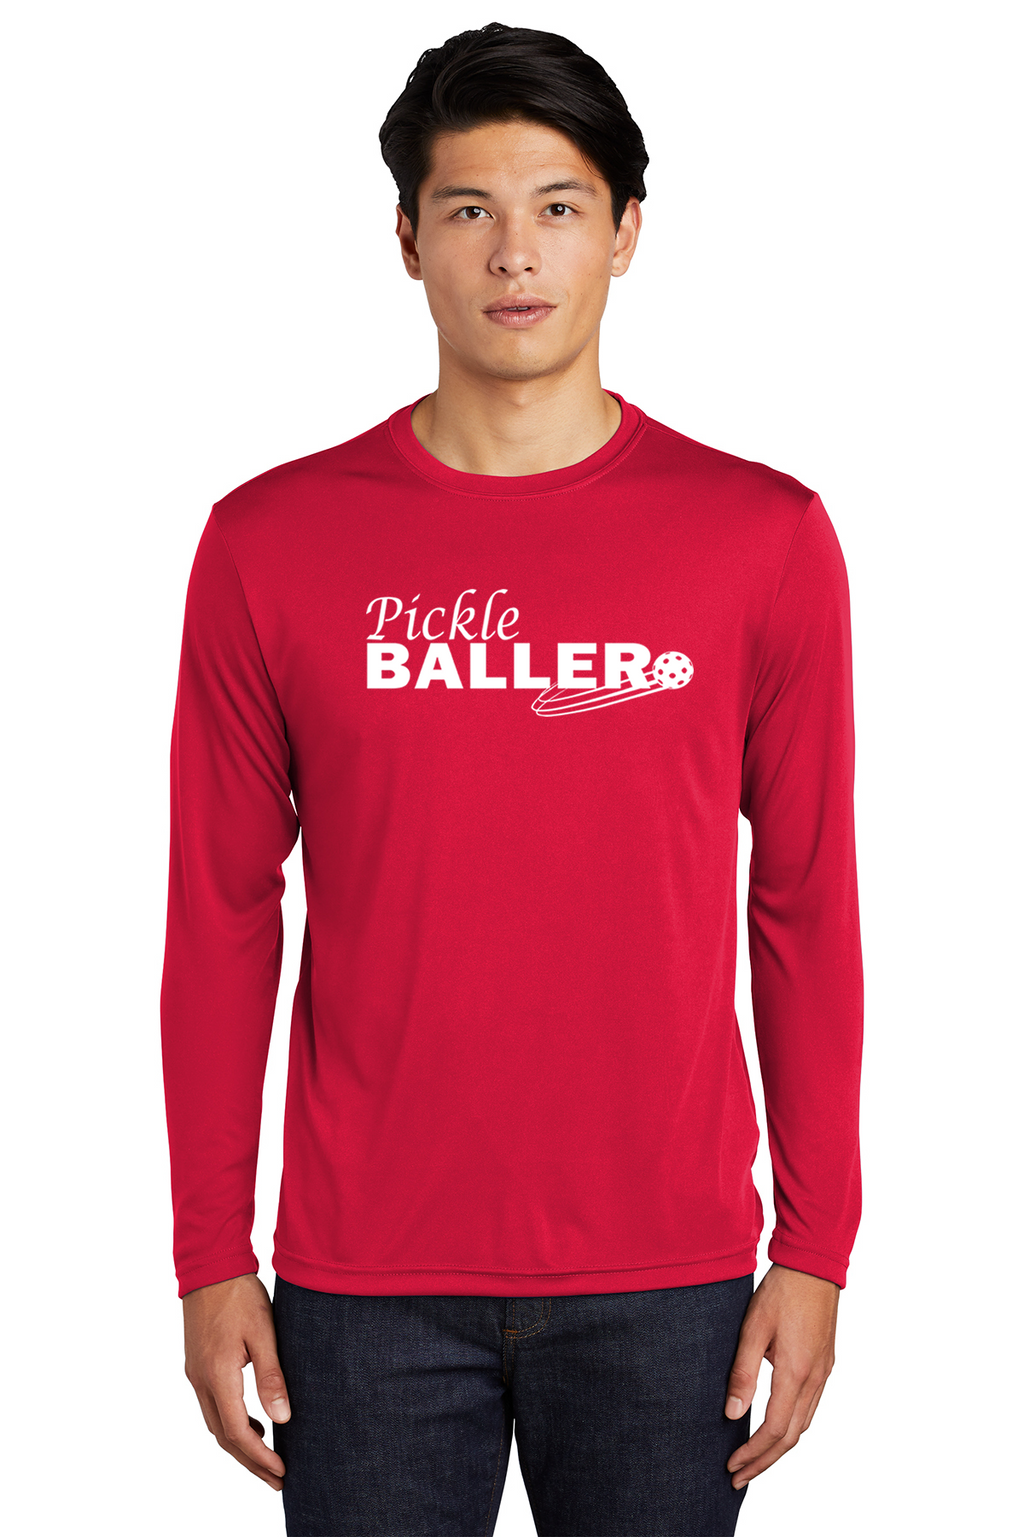 Men's Long Sleeve Performance Shirt 'Pickleballer'- Regular & UPF 50*